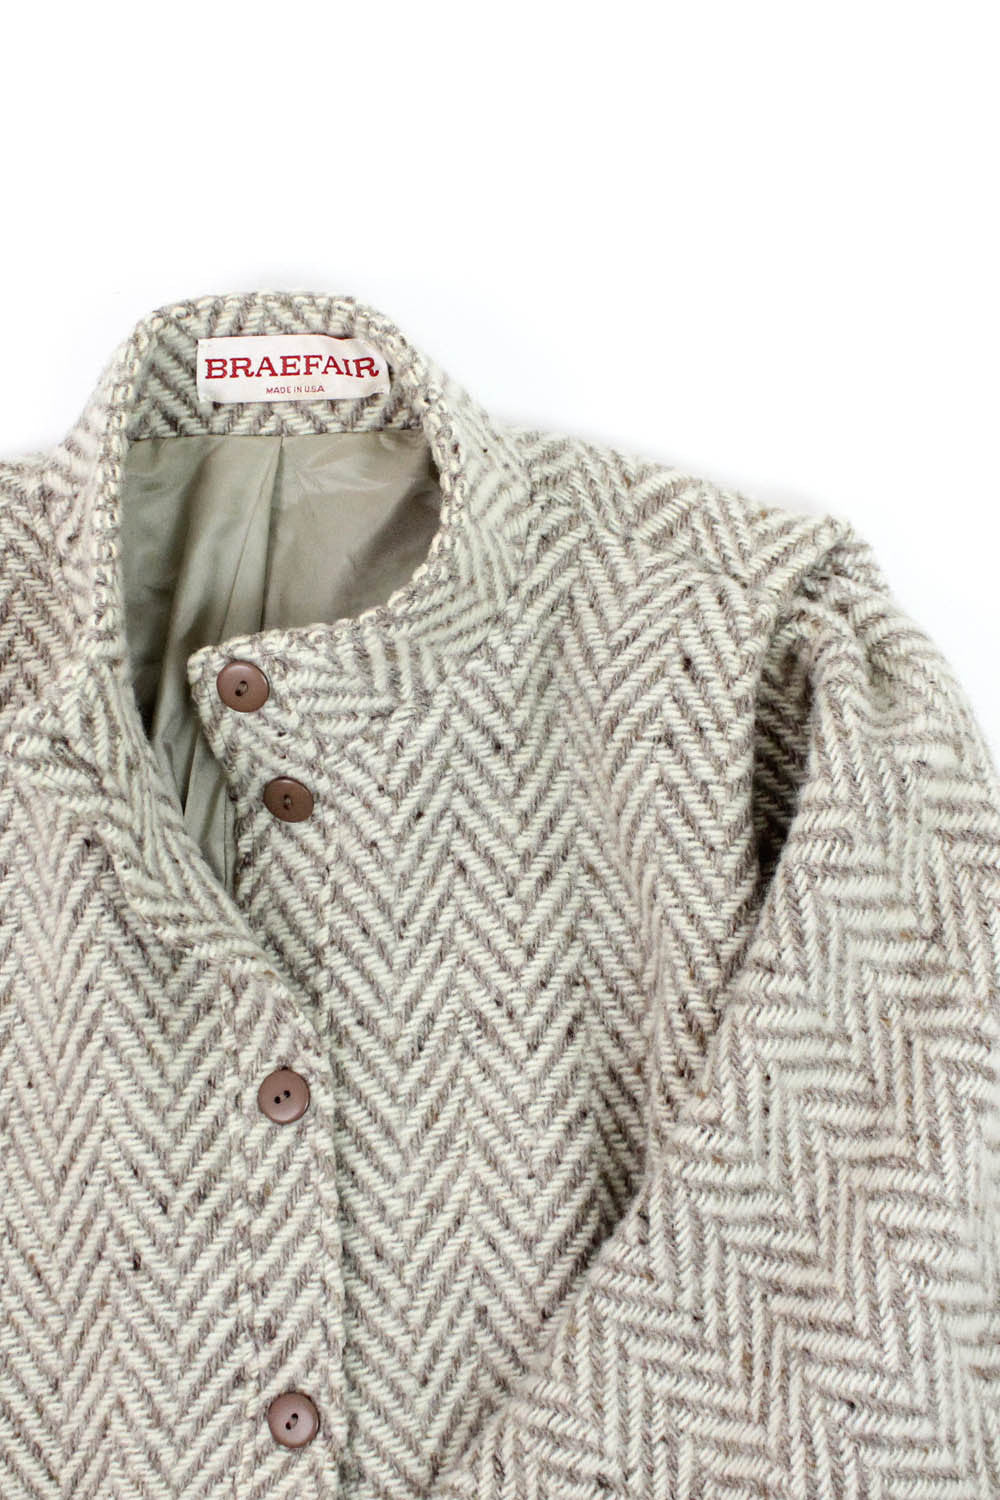 Braefair Batwing Chevron Wool Coat M